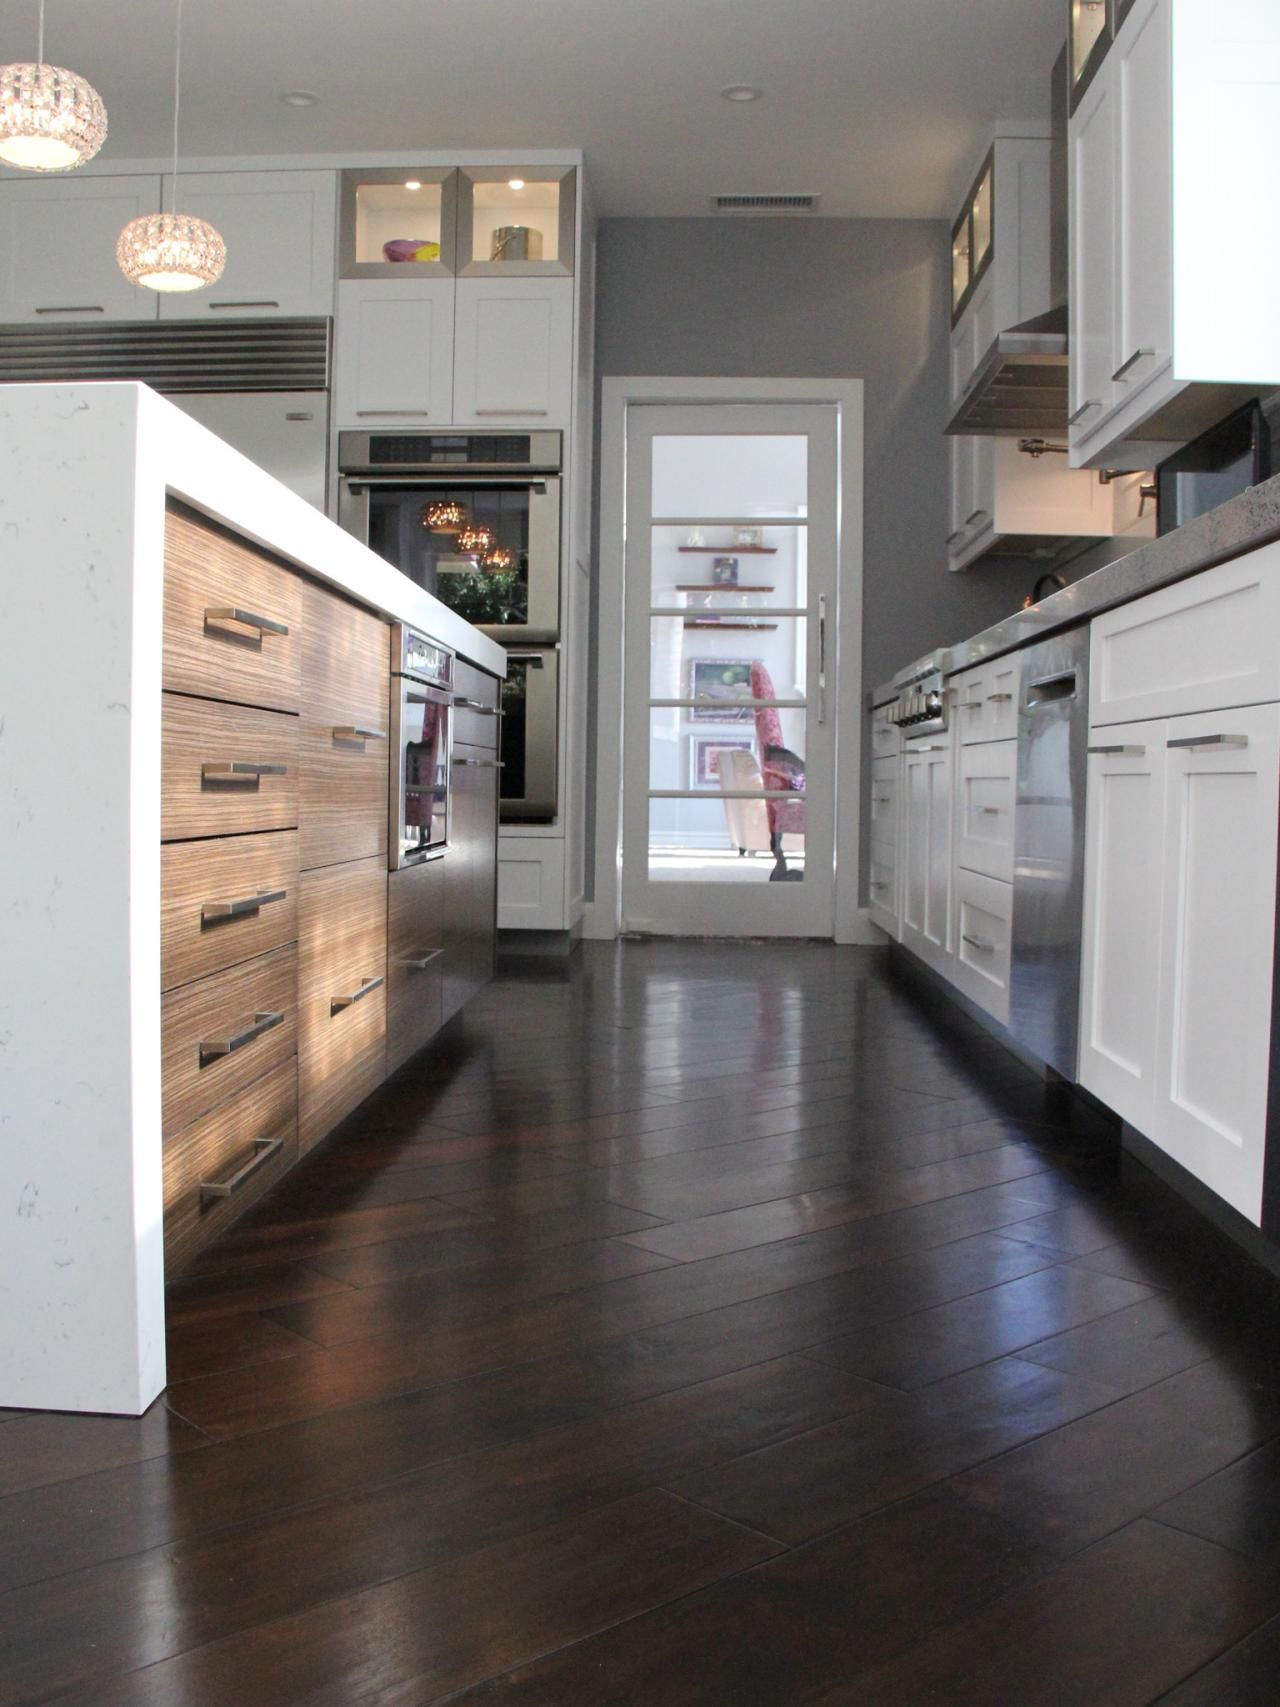 Cark Hardwood Floors Contrast With The White Cabinetry And Give This Contemporary Kitchen A Warm Look White Modern Kitchen Grey Flooring Modern Kitchen Design